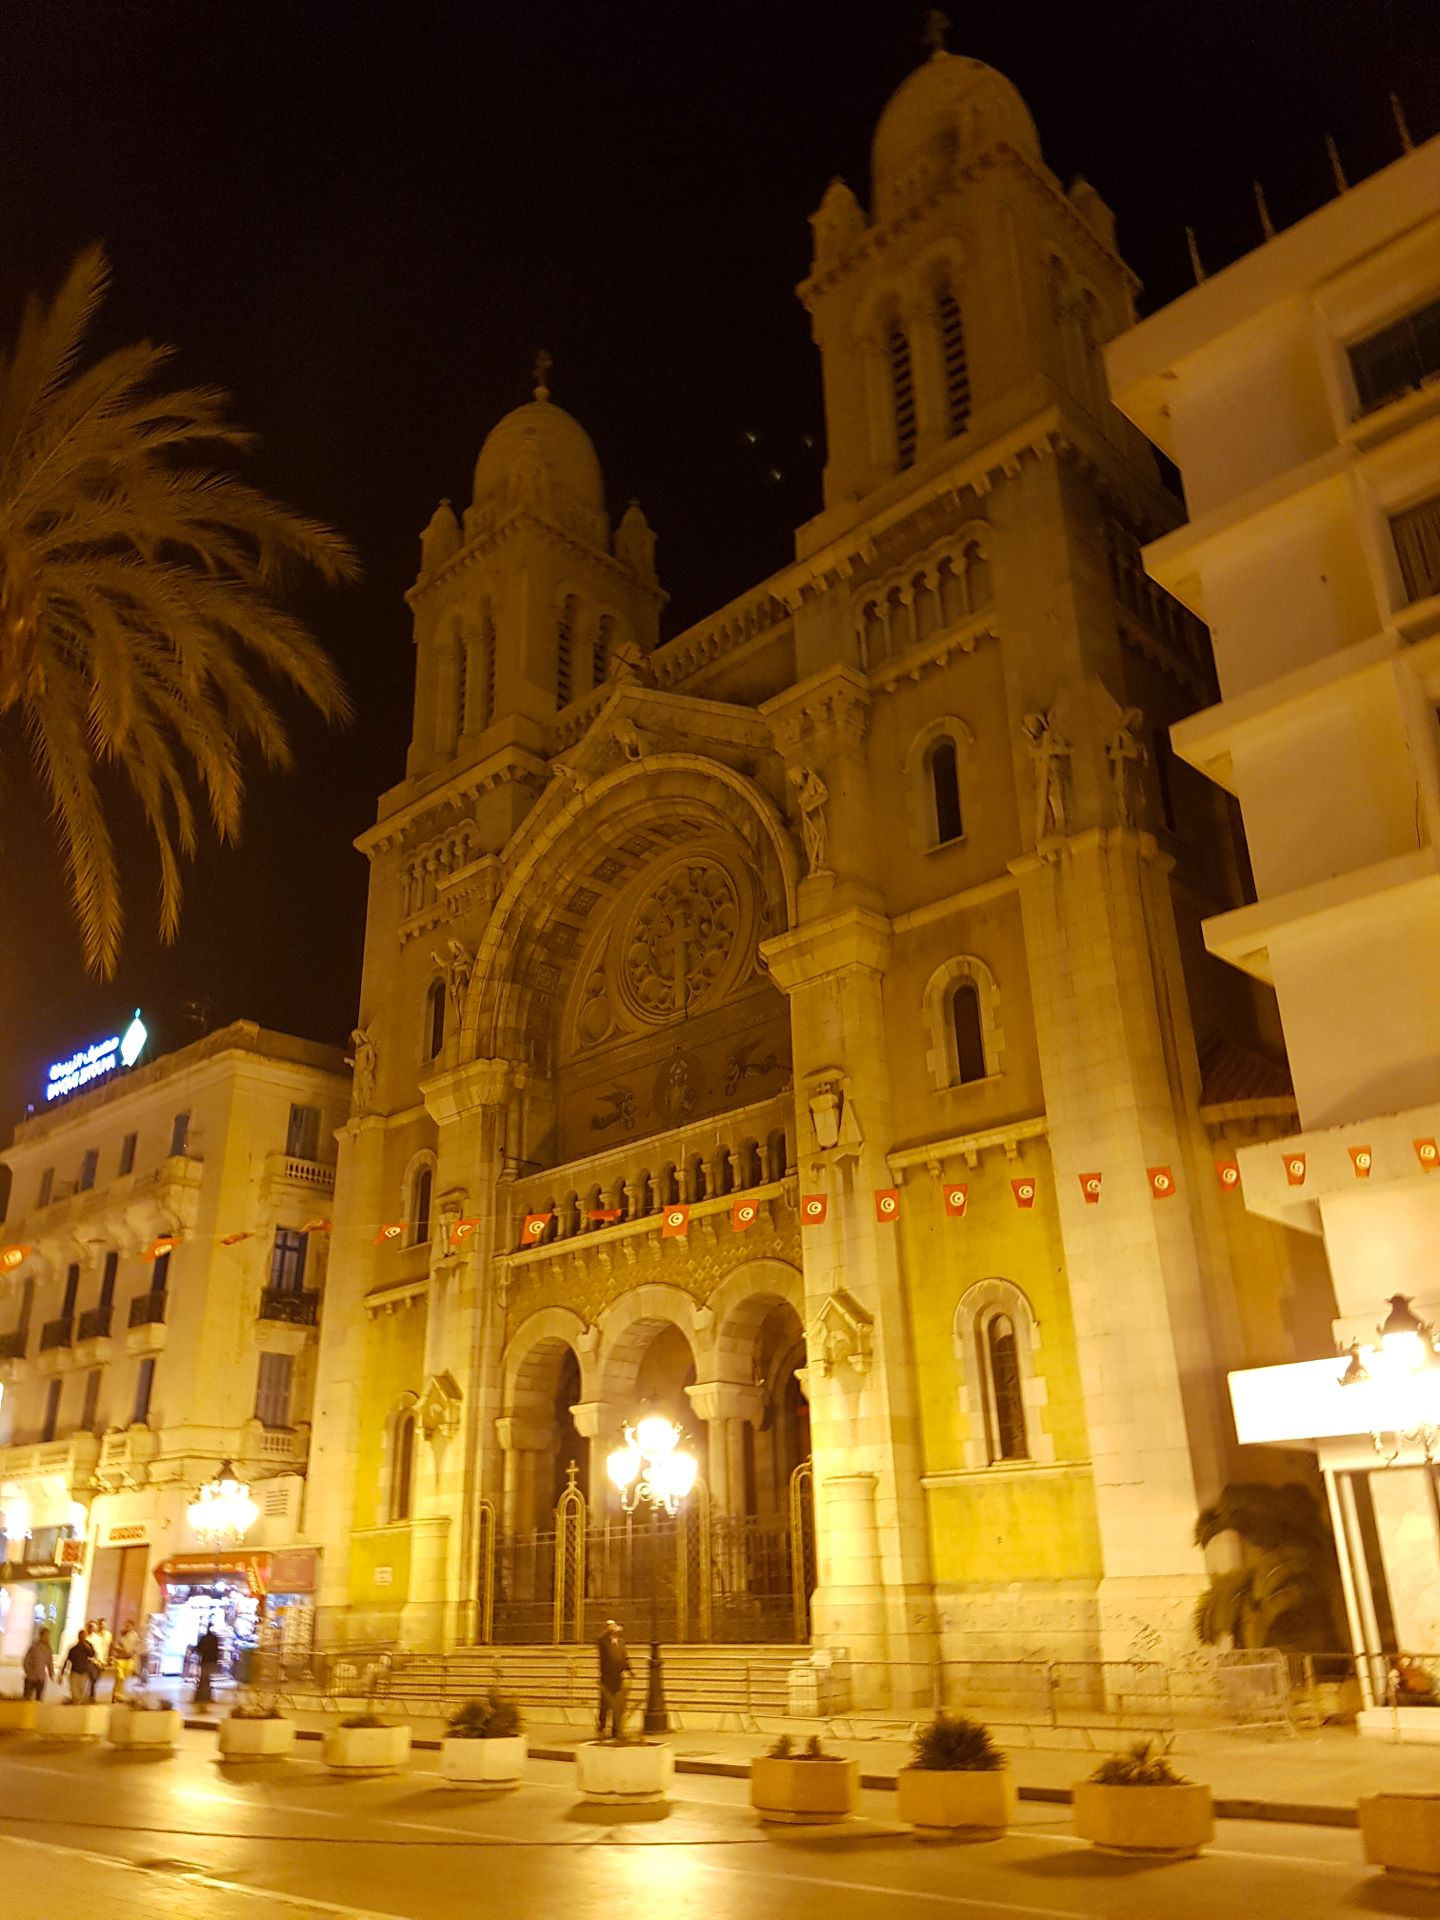 Tunis, Kathedrale in der Avenue Habib Bourguiba